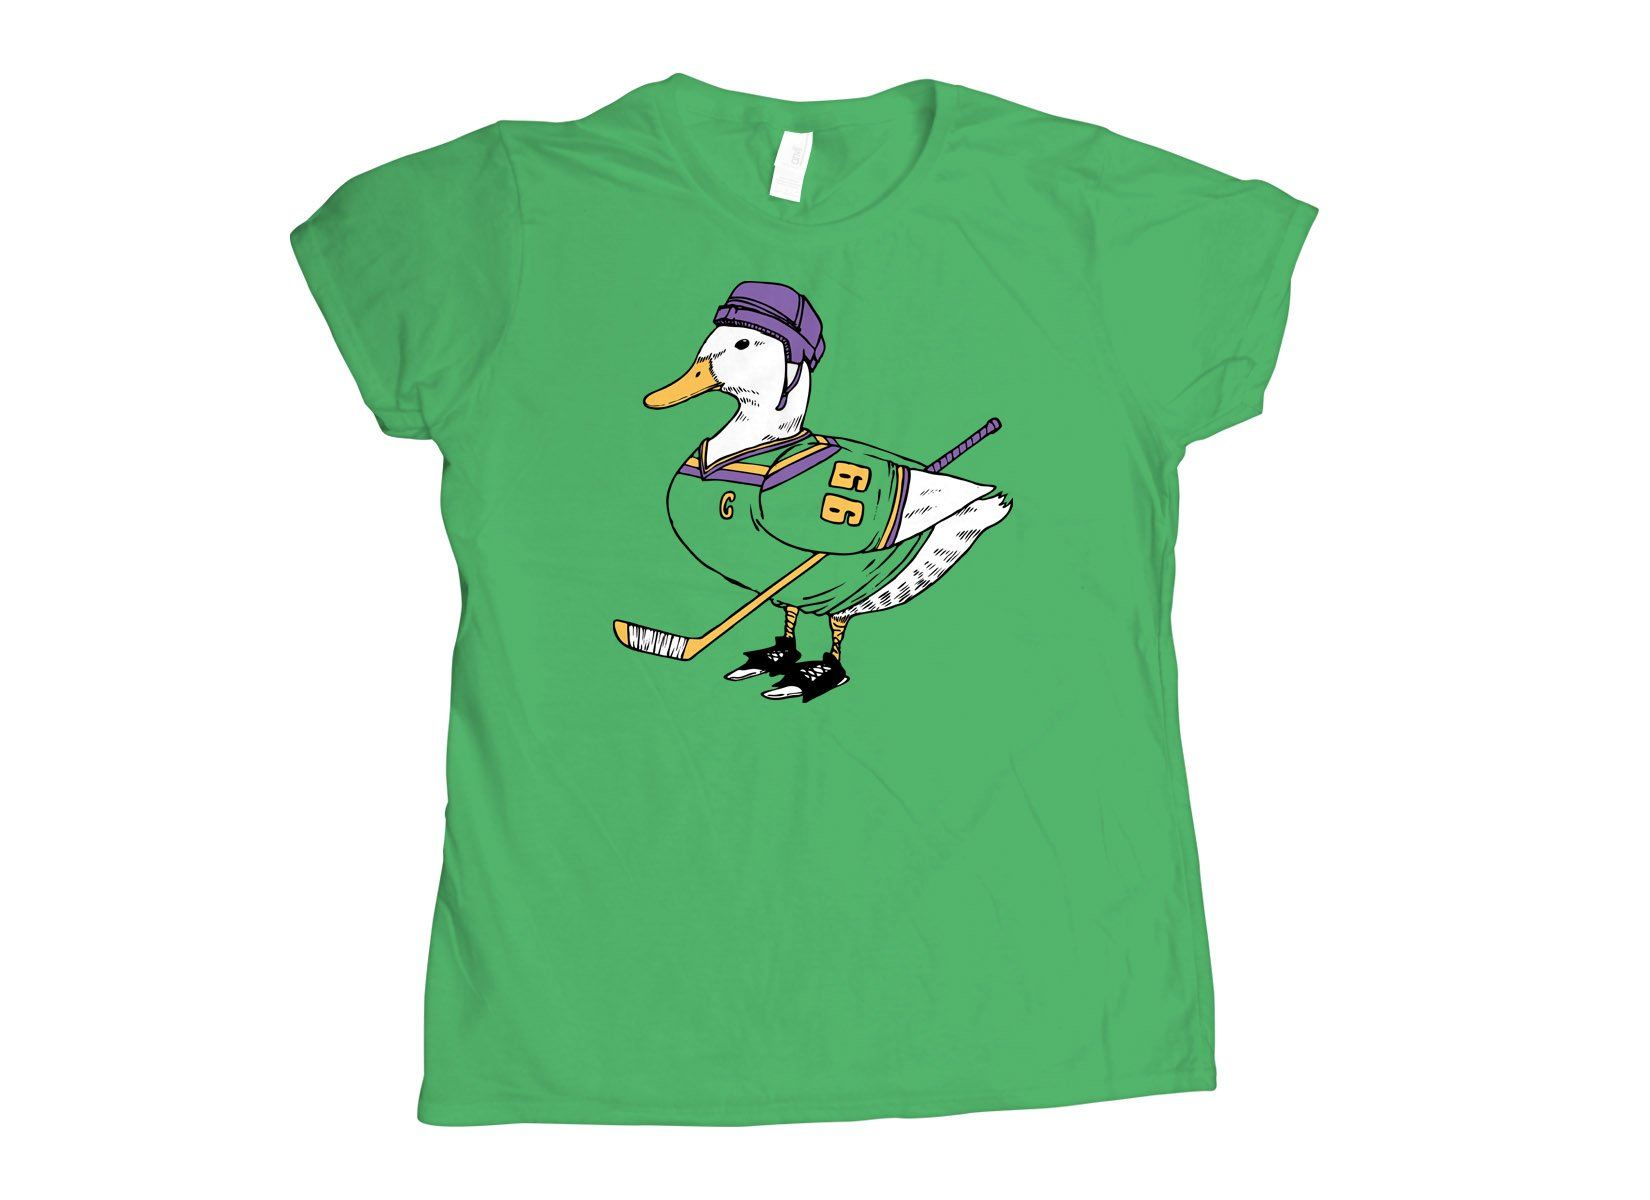 Mighty Duck on Womens T-Shirt